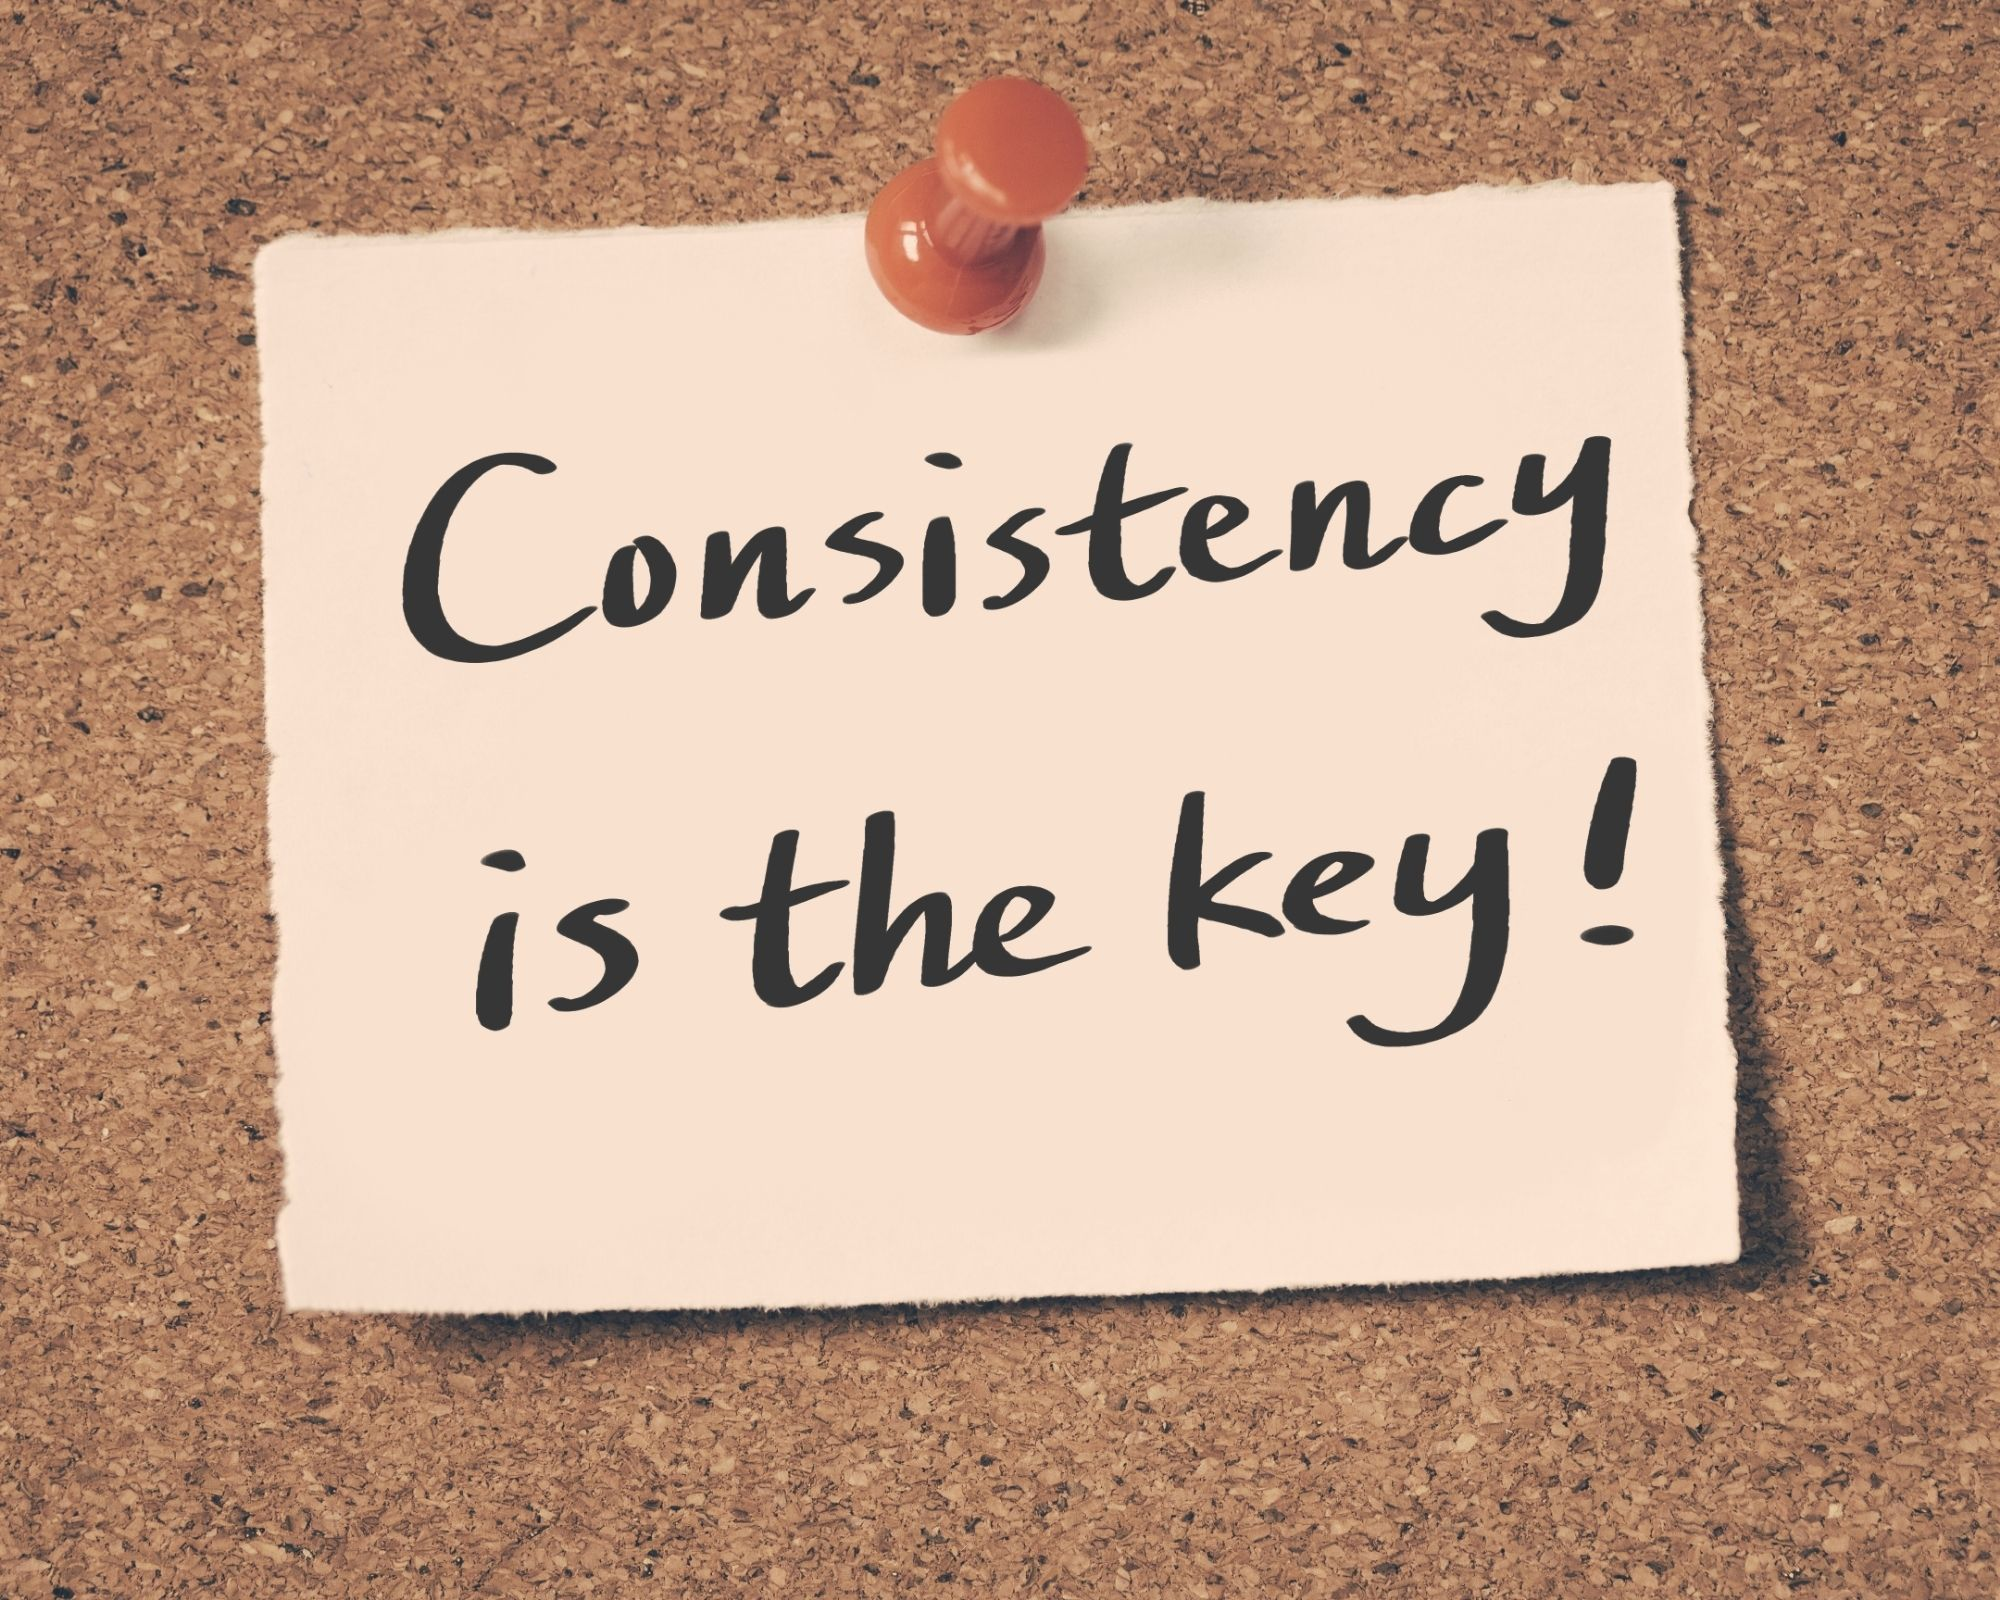 Consistency - Back to it